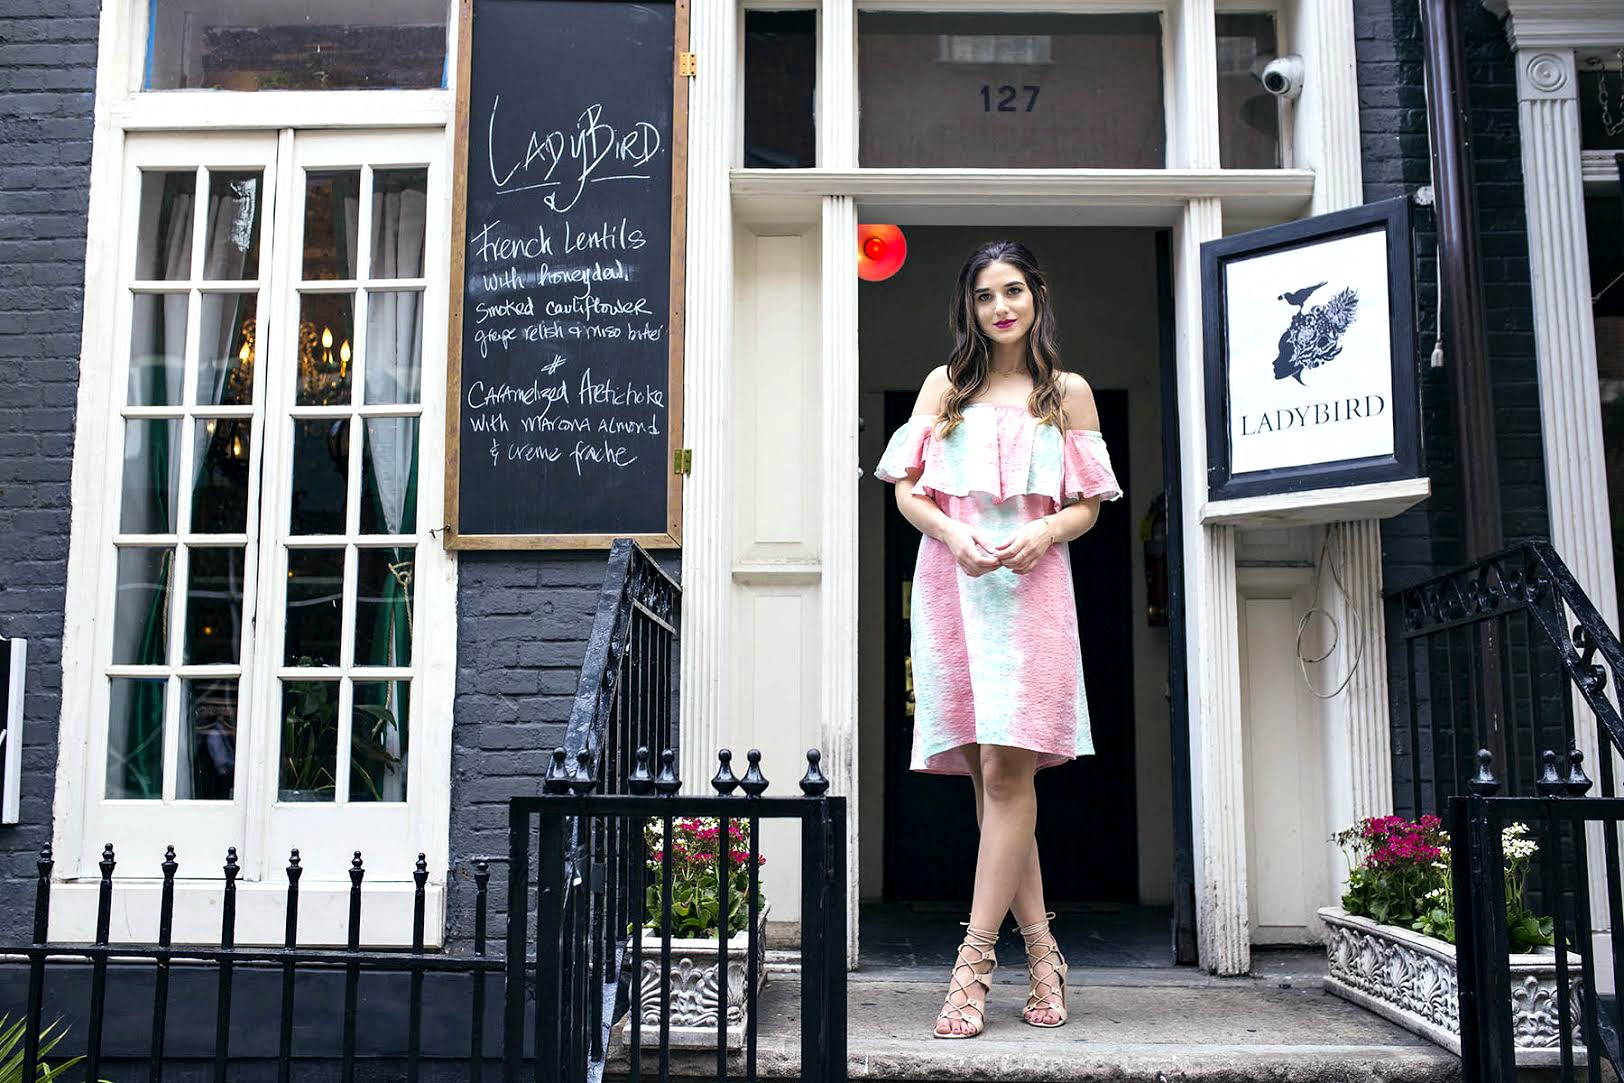 Pastel Tie-Dye Dress Shop Trescool Louboutins & Love Fashion Blog Esther Santer NYC Street Style Blogger Outfit OOTD Trendy Cold Shoulders Blue Black Women Girl Curly Hair Brown Green Pink Red Lip Makeup Heels Lace Up Gray Lady Fashion Bracelet Choker.jpg